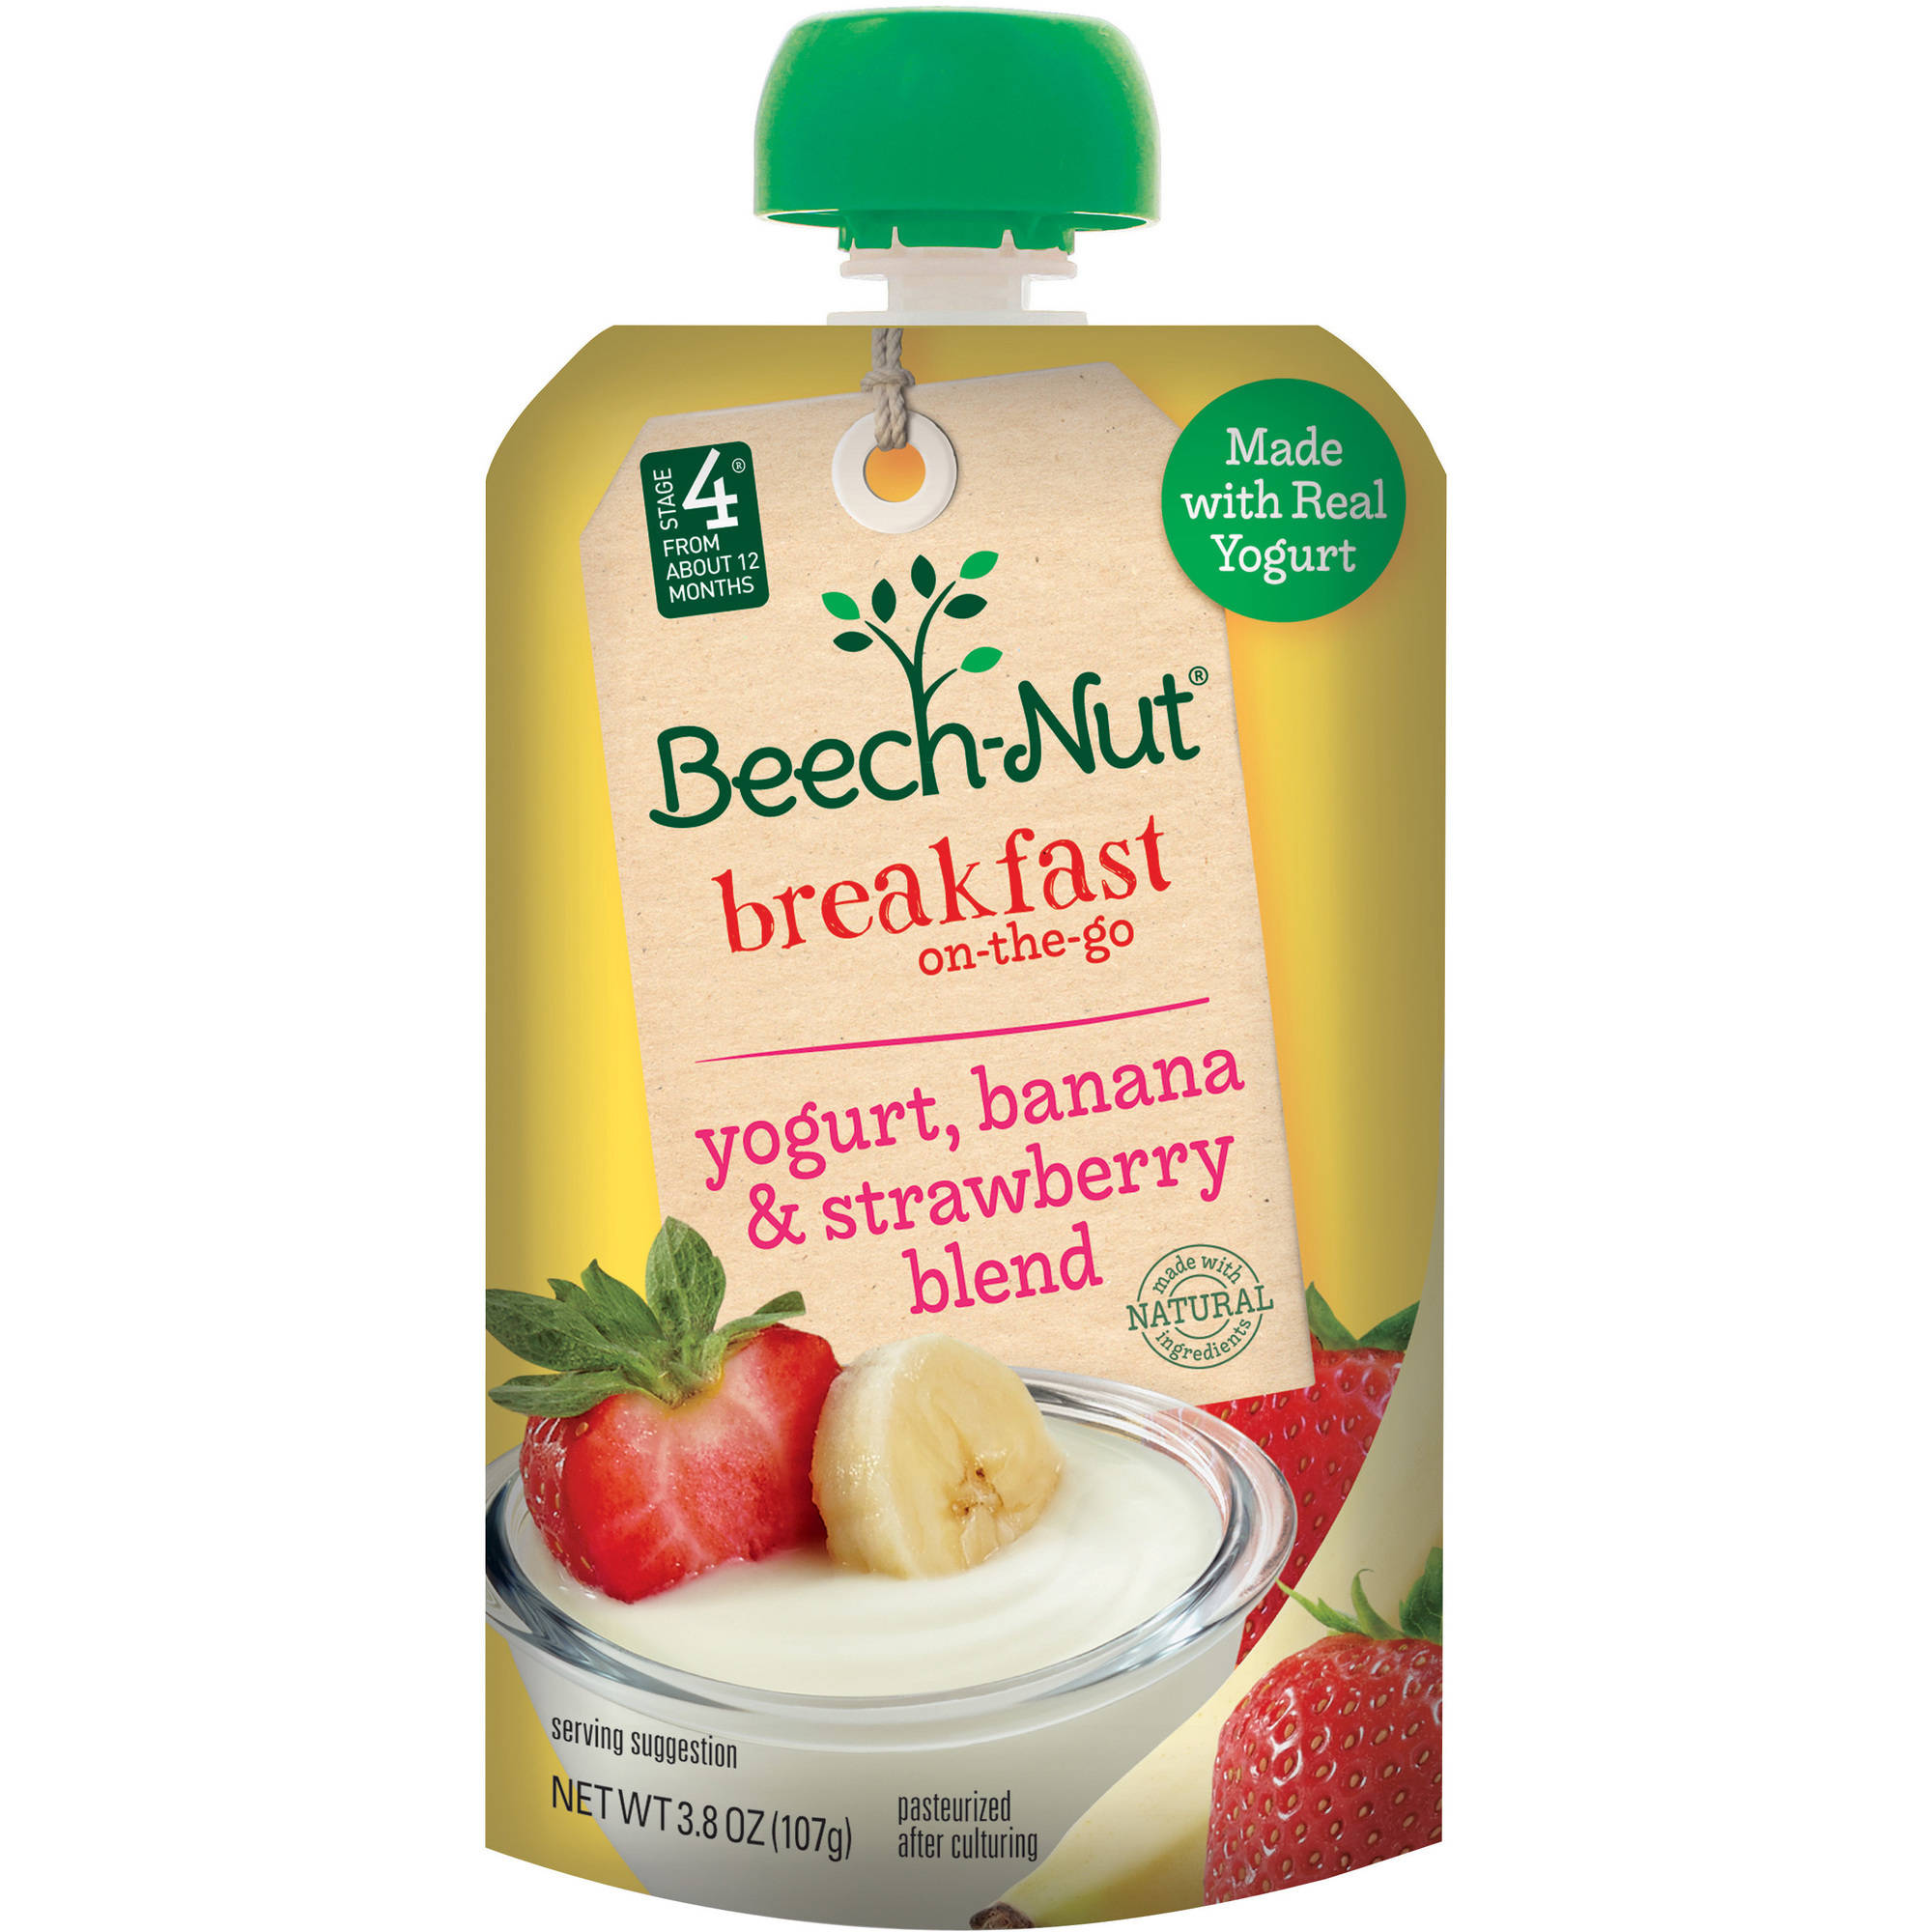 Beech-Nut Stage 4 Breakfast On-The-Go Yogurt, Banana & Strawberry Blend, 3.8 OZ